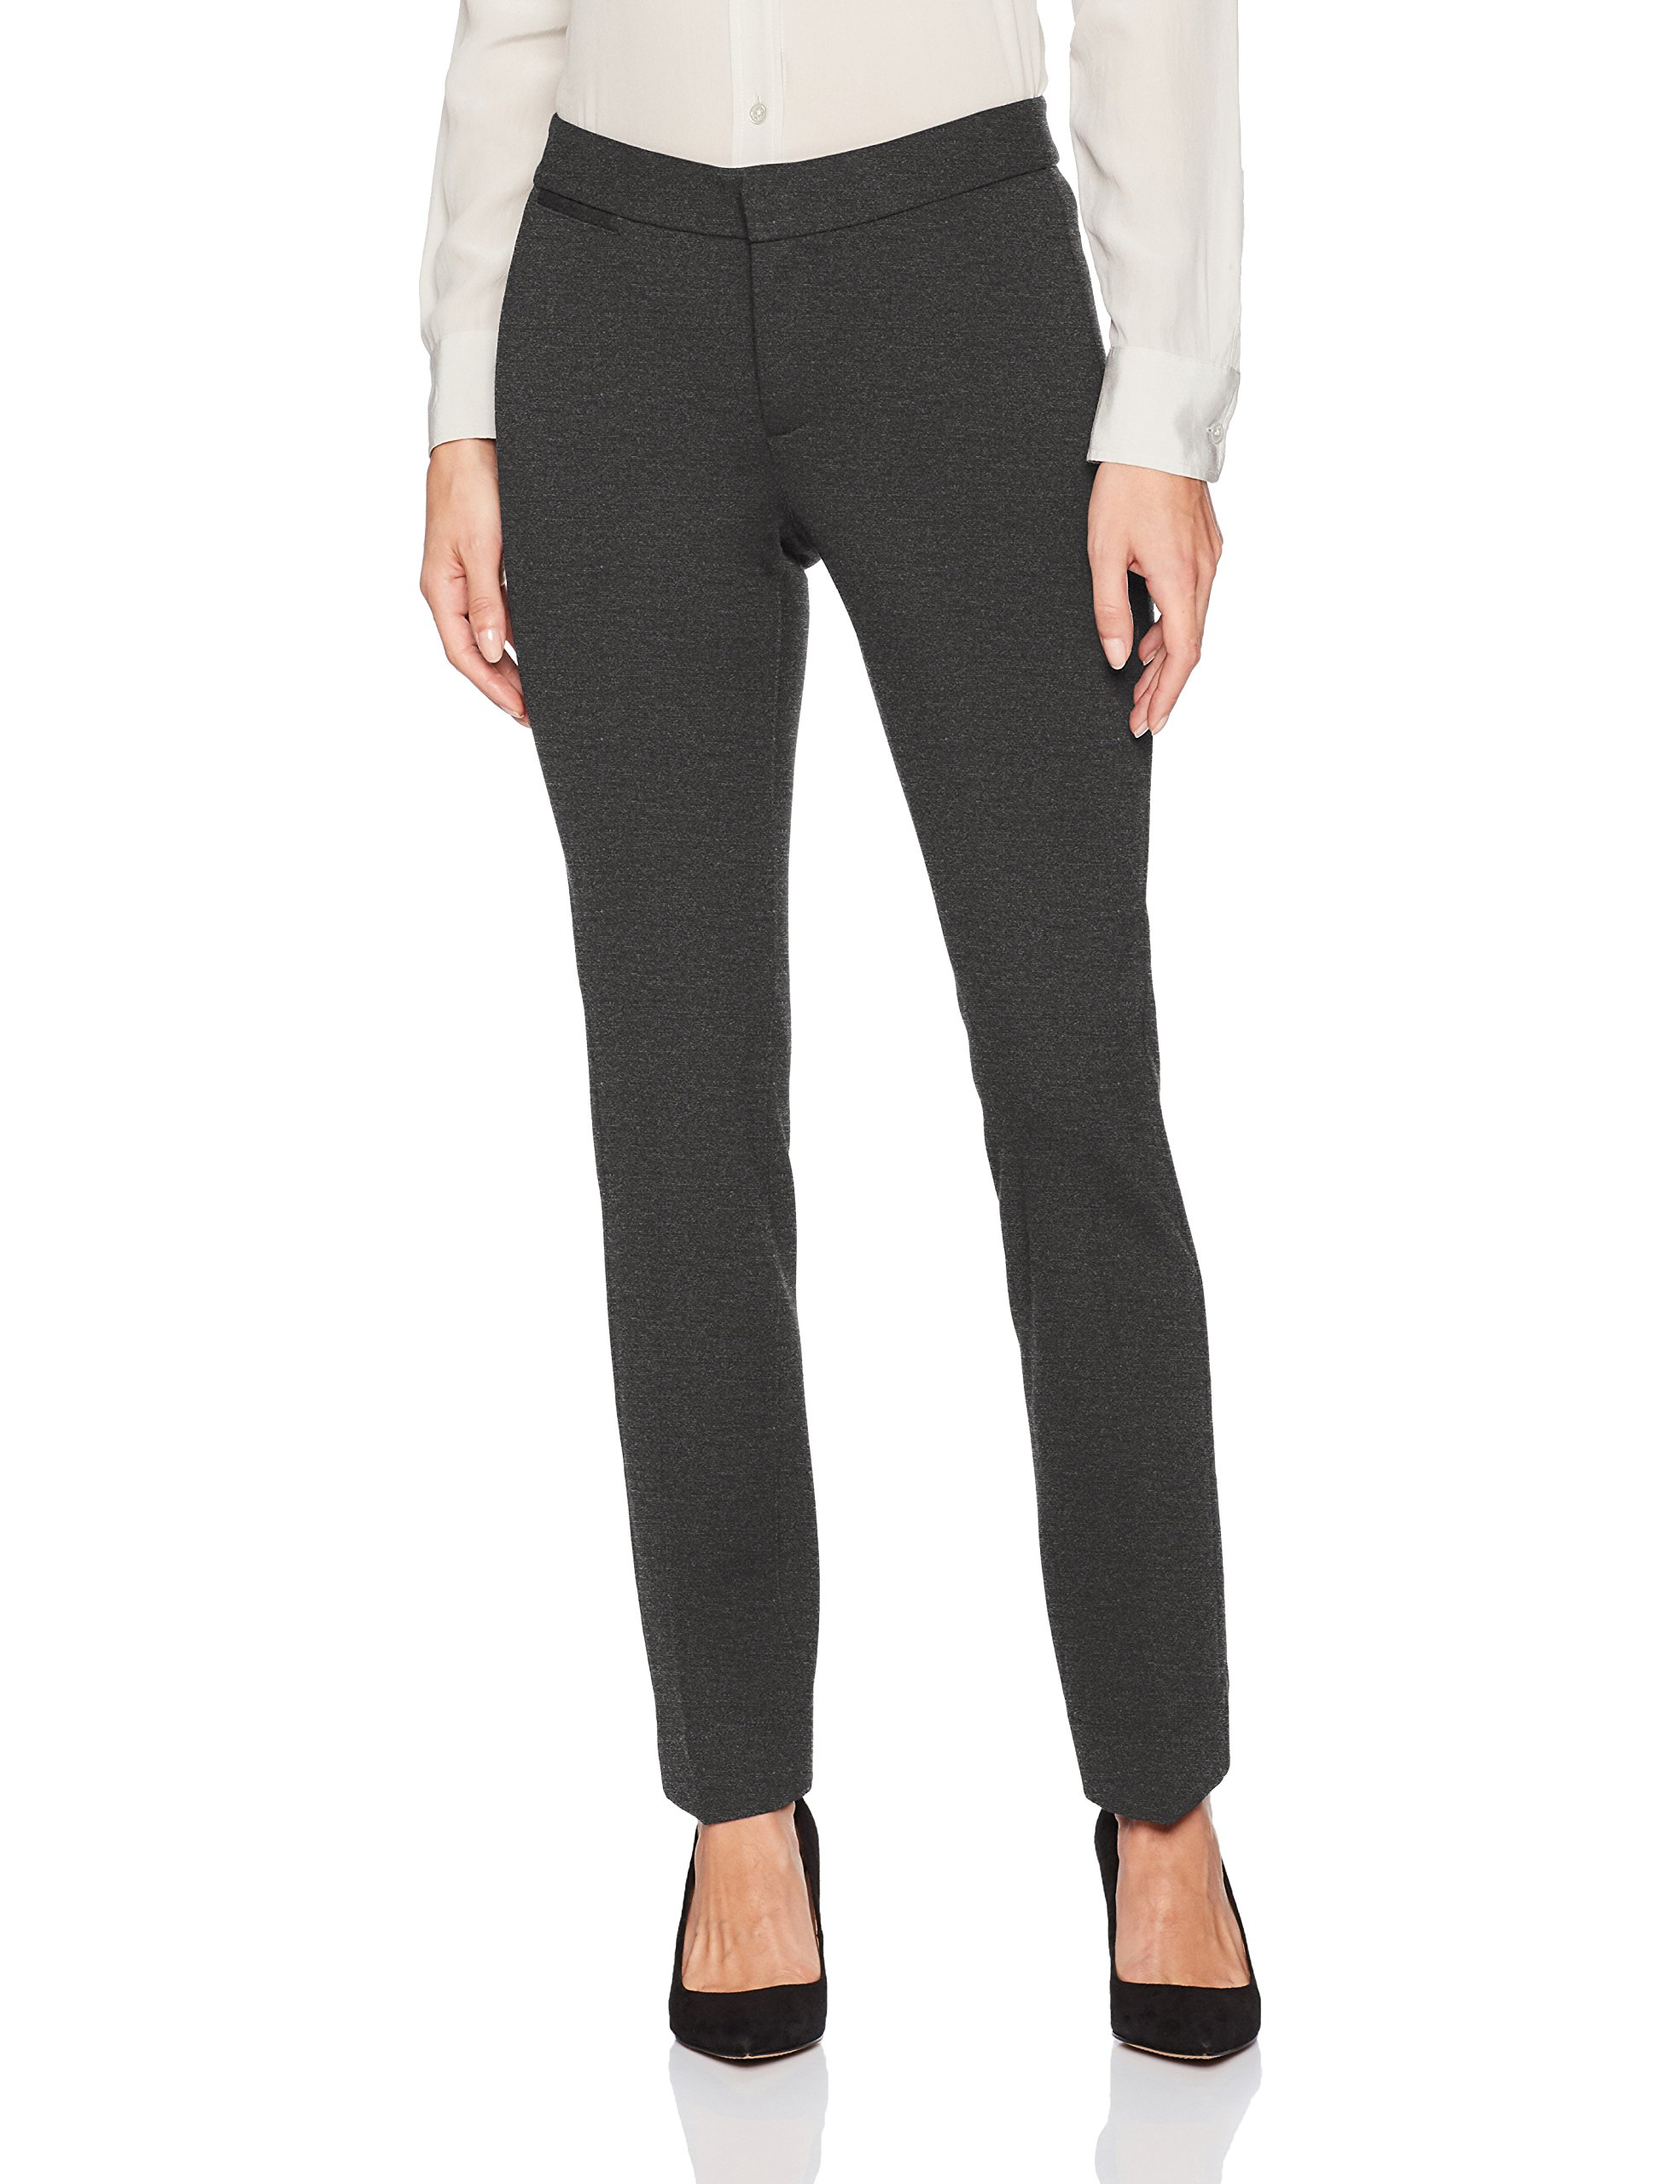 NYDJ Women's Petite Ponte Trouser Pant, Charcoal Heather, 10P by NYDJ